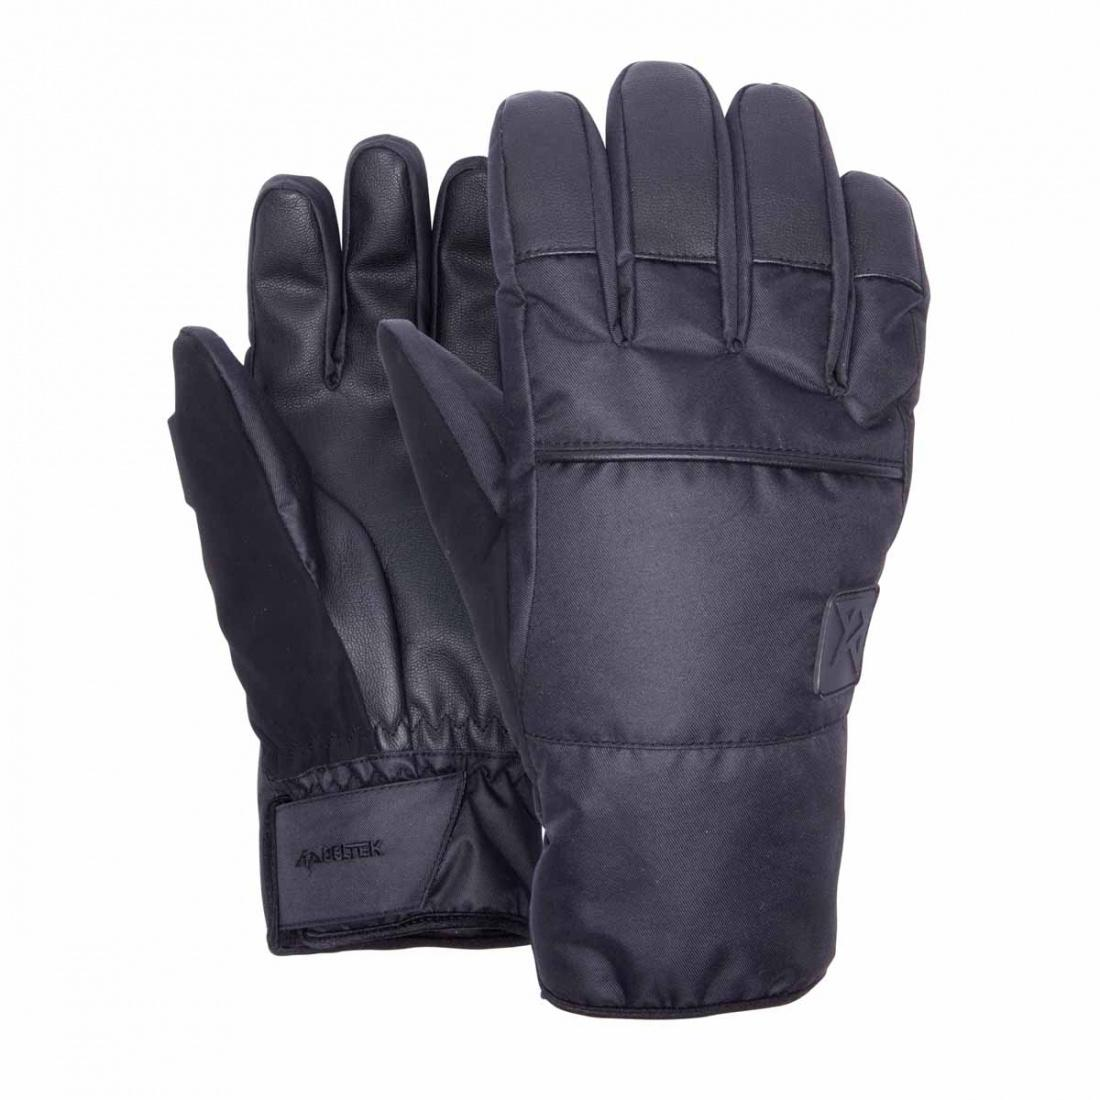 CELTEK Перчатки Celtek Ace Glove Black M перчатки dakine rover glove true black